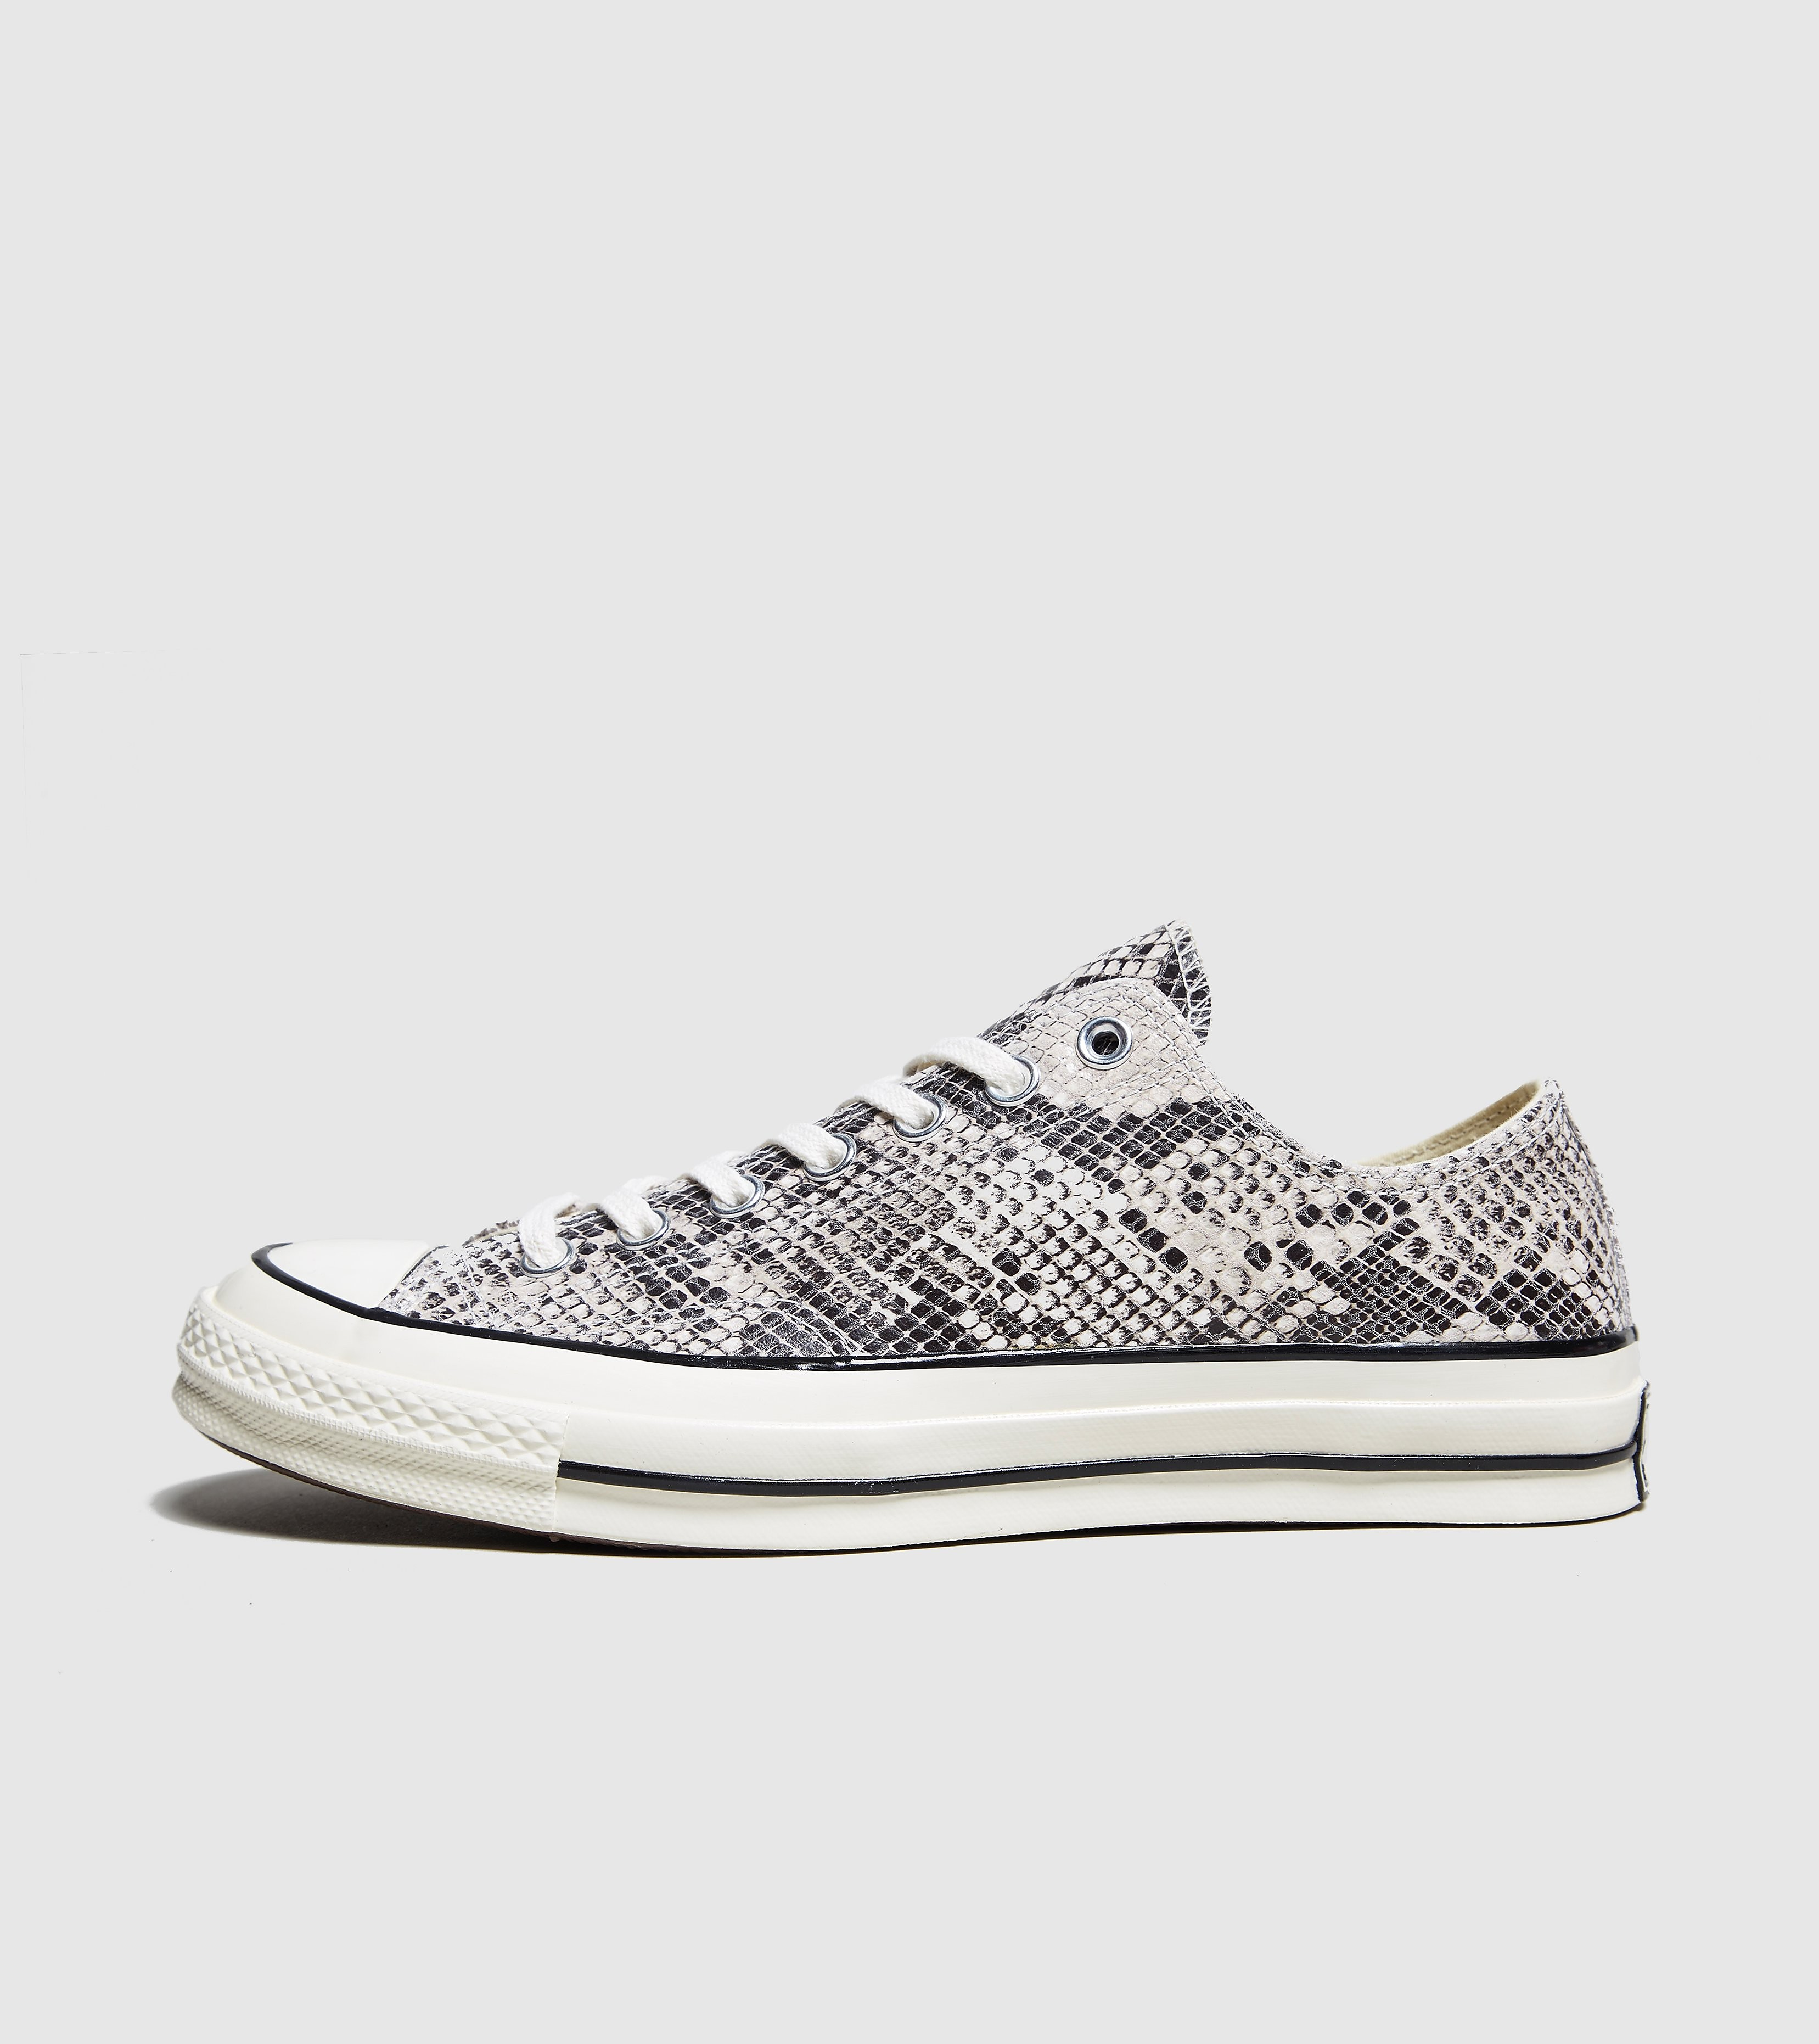 Converse All Star 70's 'Snakeskin'